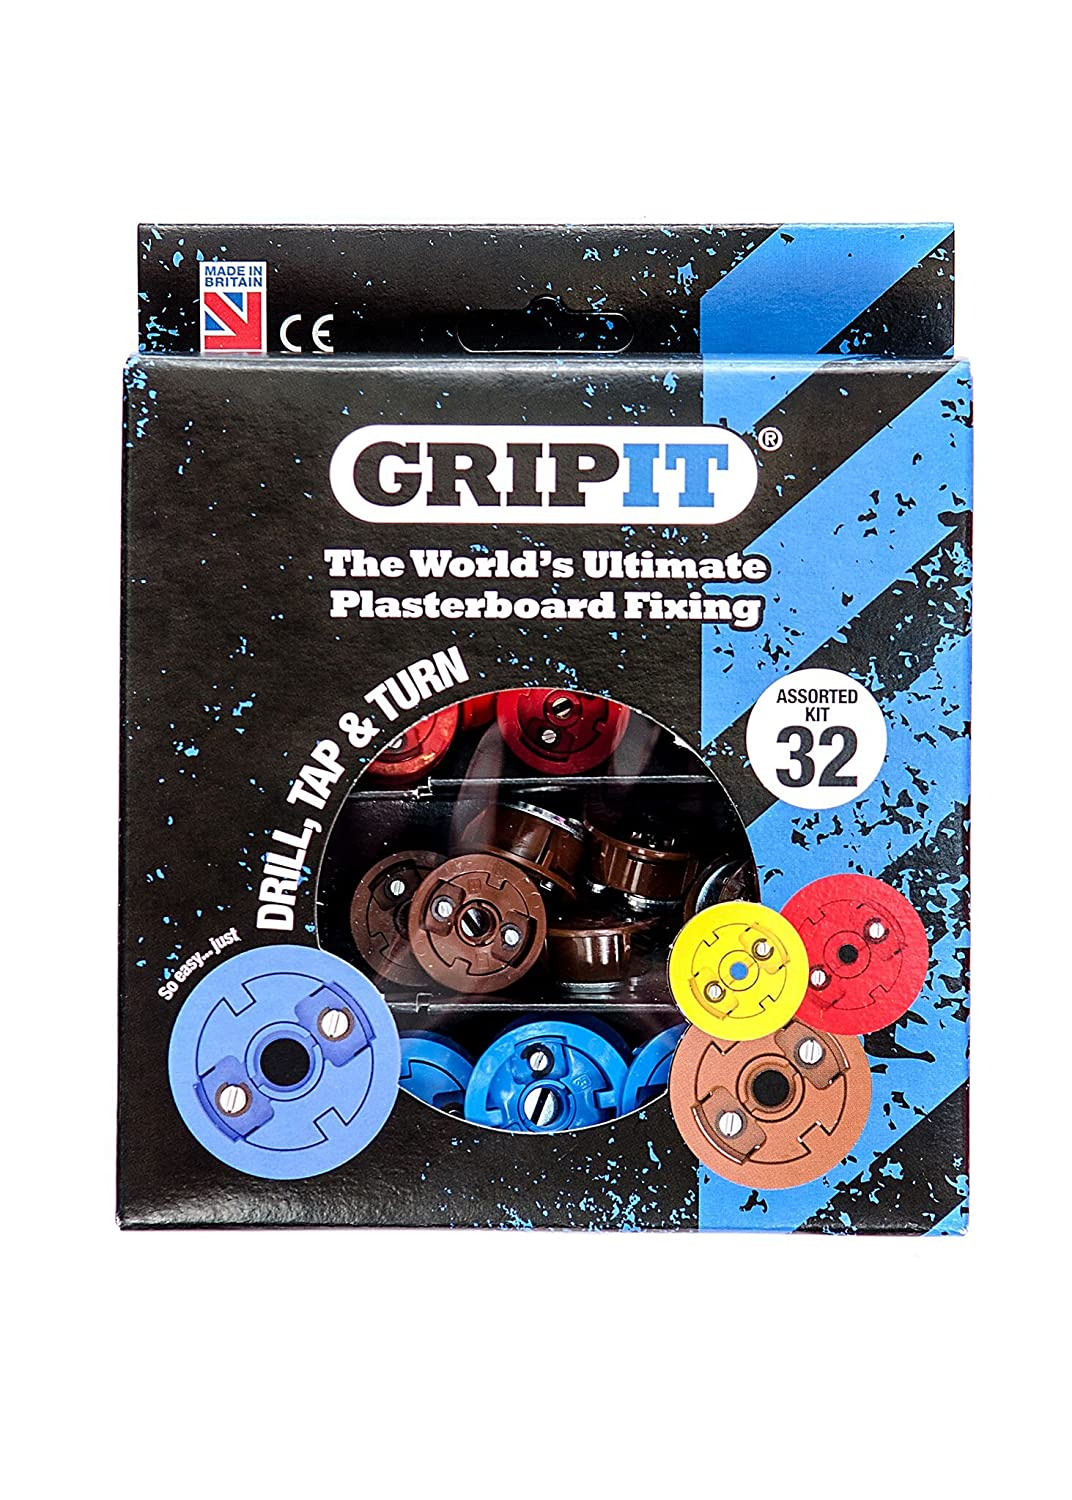 GripIt Drywall Anchor Fixing Kit Holds Up To 250 Pounds or 113 Kilograms Of Weight. Perfect For Hanging Heavy Such as TVs, Boilers, Cabinets on Plasterboard Walls.. Removable and Reusable Screws (32 Fixings) Grip-It GSTARTKIT-001